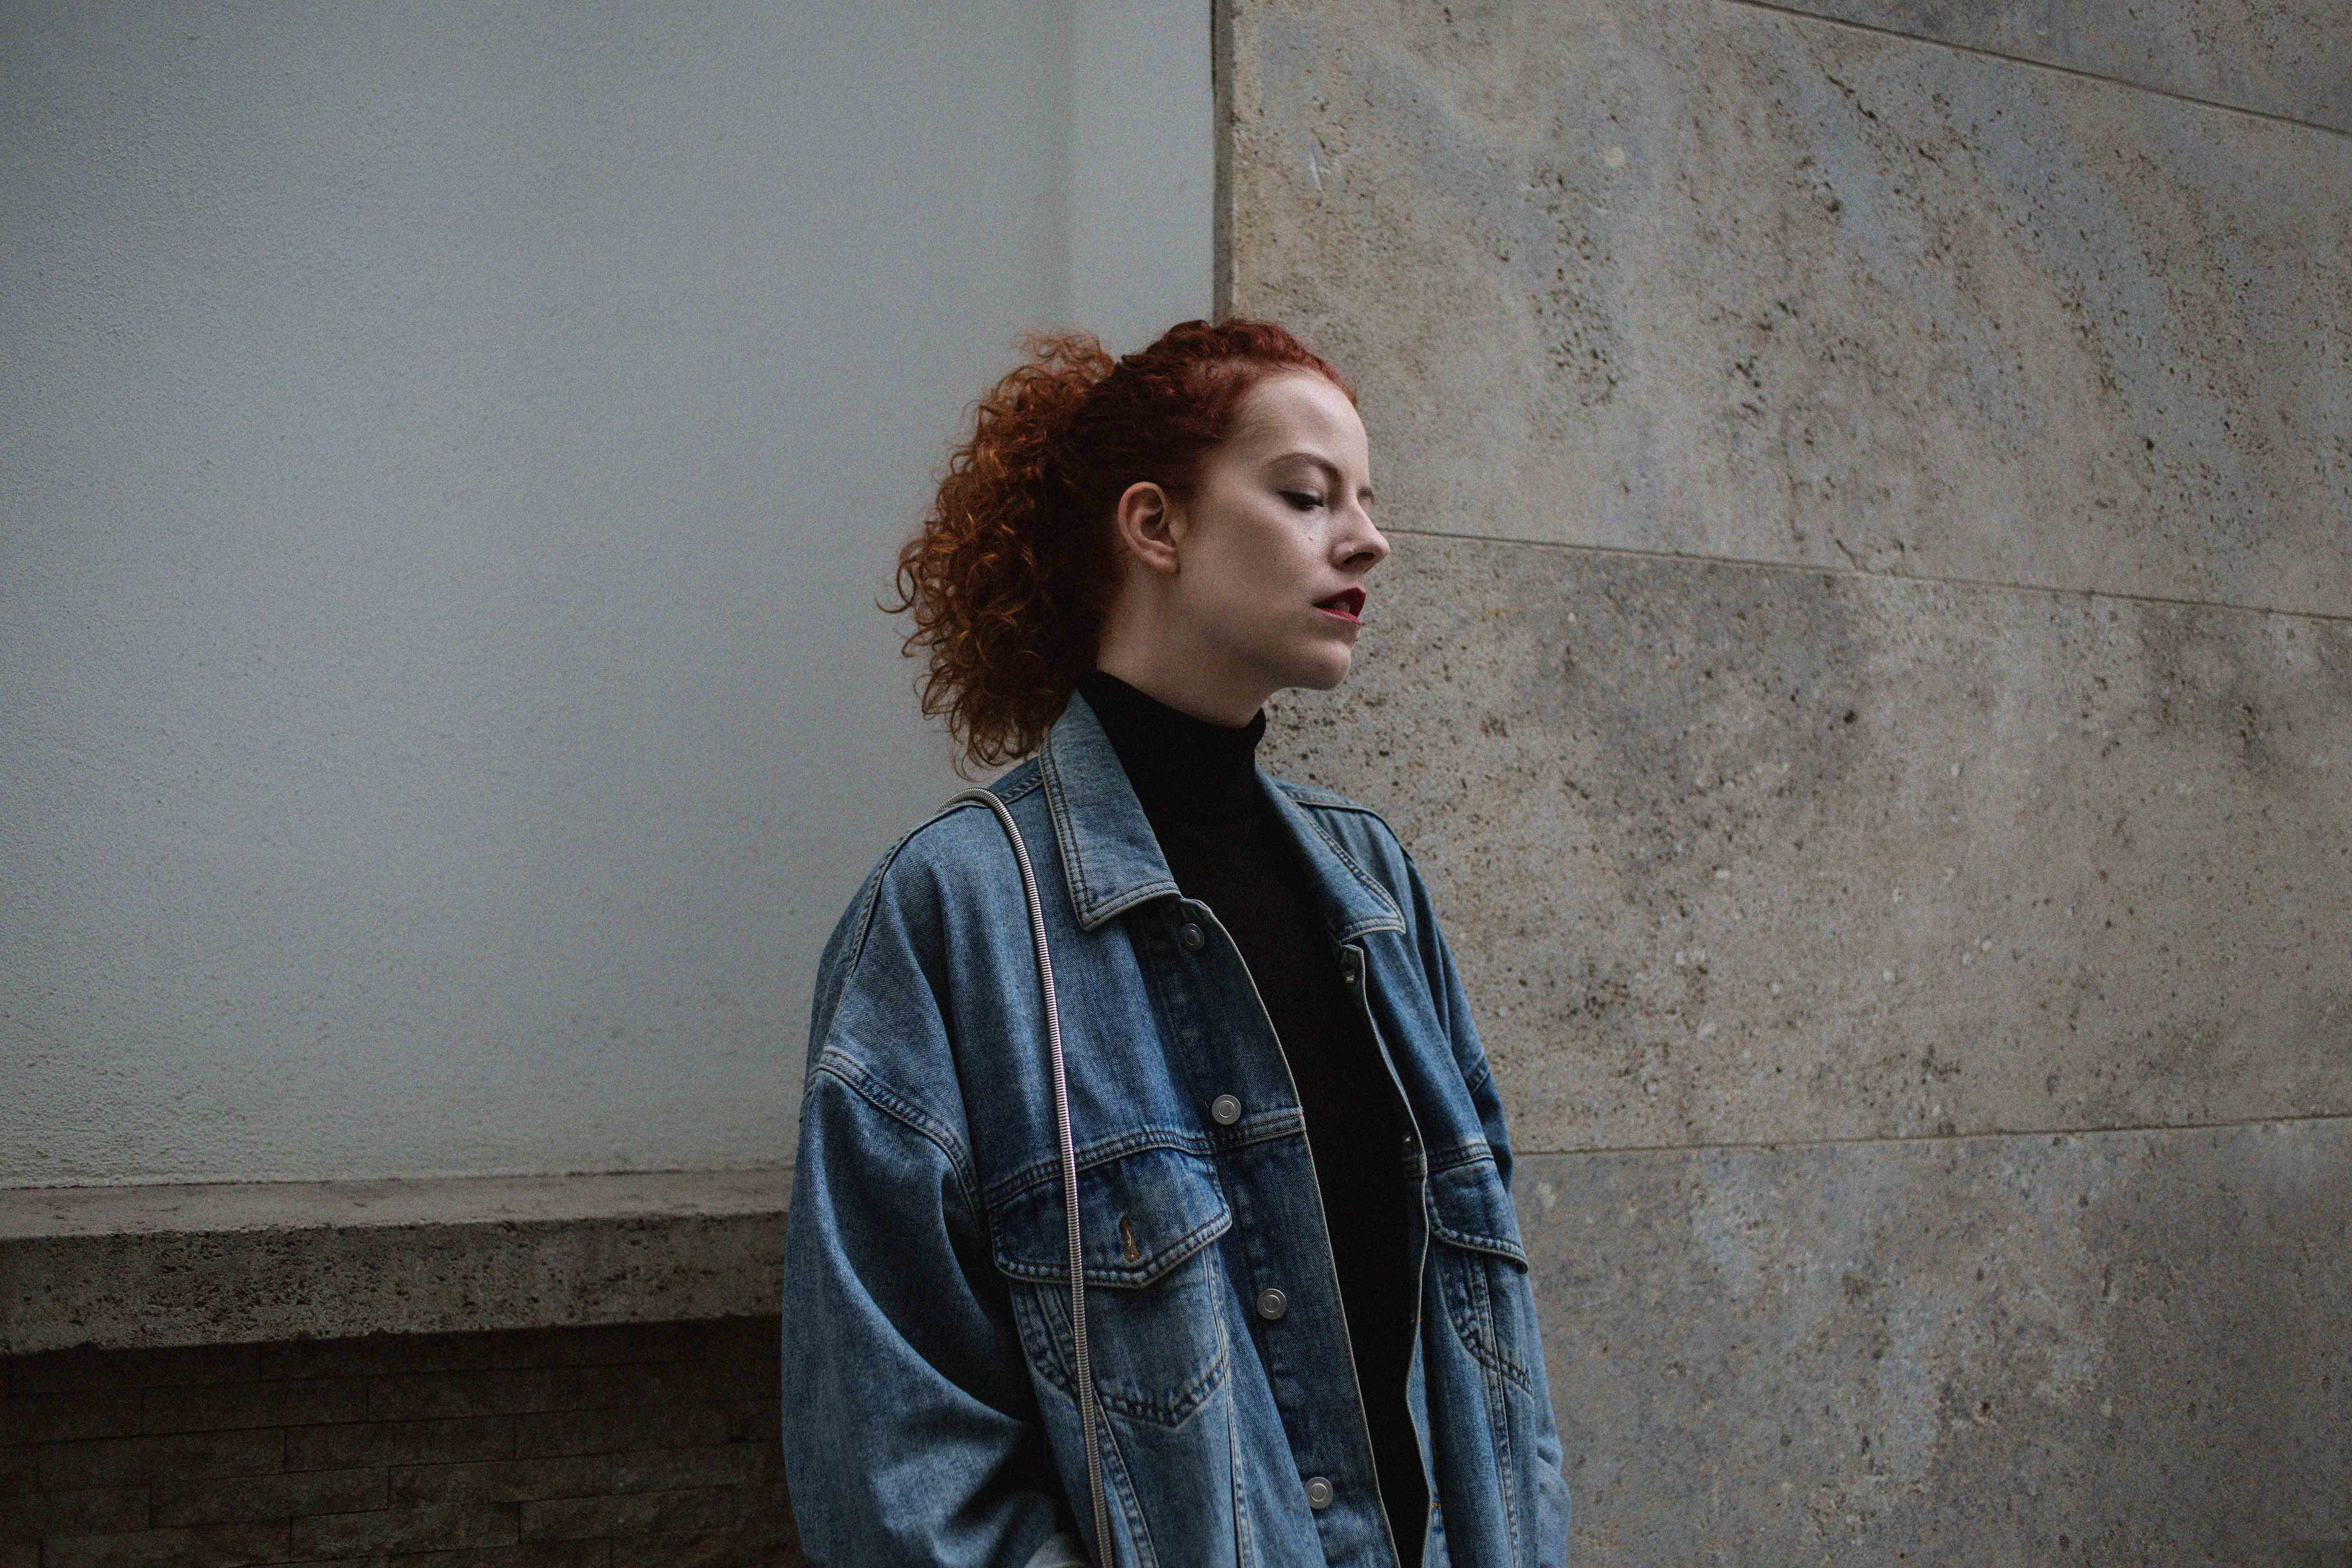 denim jacket jeansjacke denim on denim outfit blogger frankfurt ootd lookbook look thecurledgirl the curled girl autumn inspiration herbst winter camel coat edgy nike sneaker boots pullover layering asos curls ffm mode fashion frankfurt